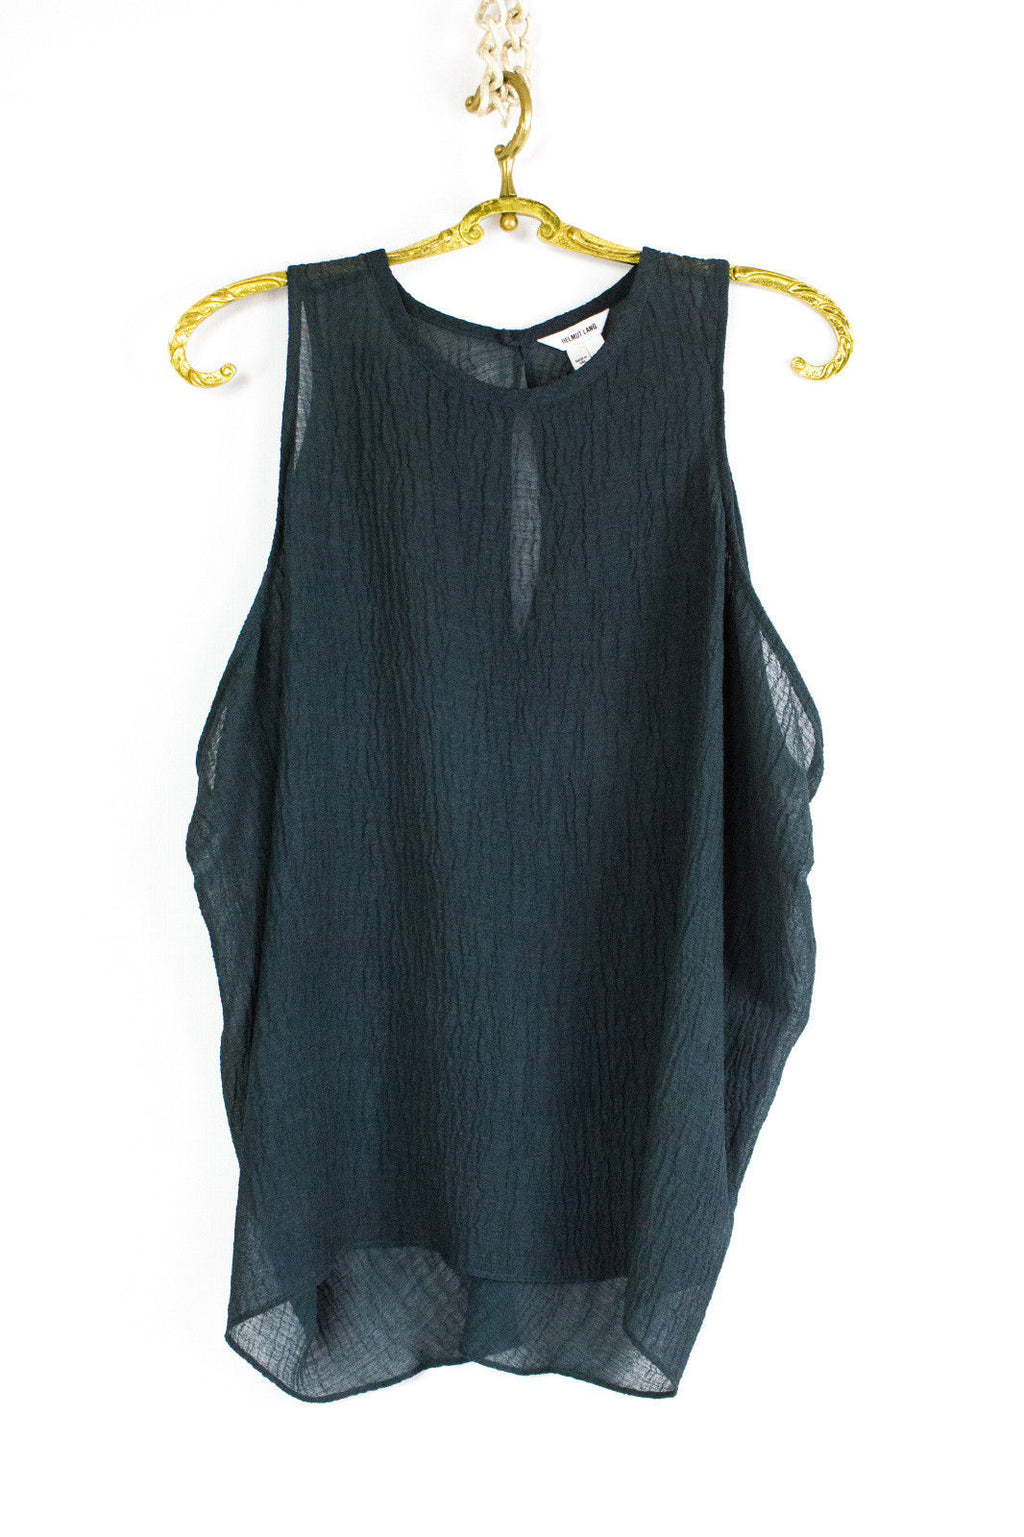 HELMUT LANG Dark Green Sheer Sleeveless Top Blouse, SIZE S - secondfirst